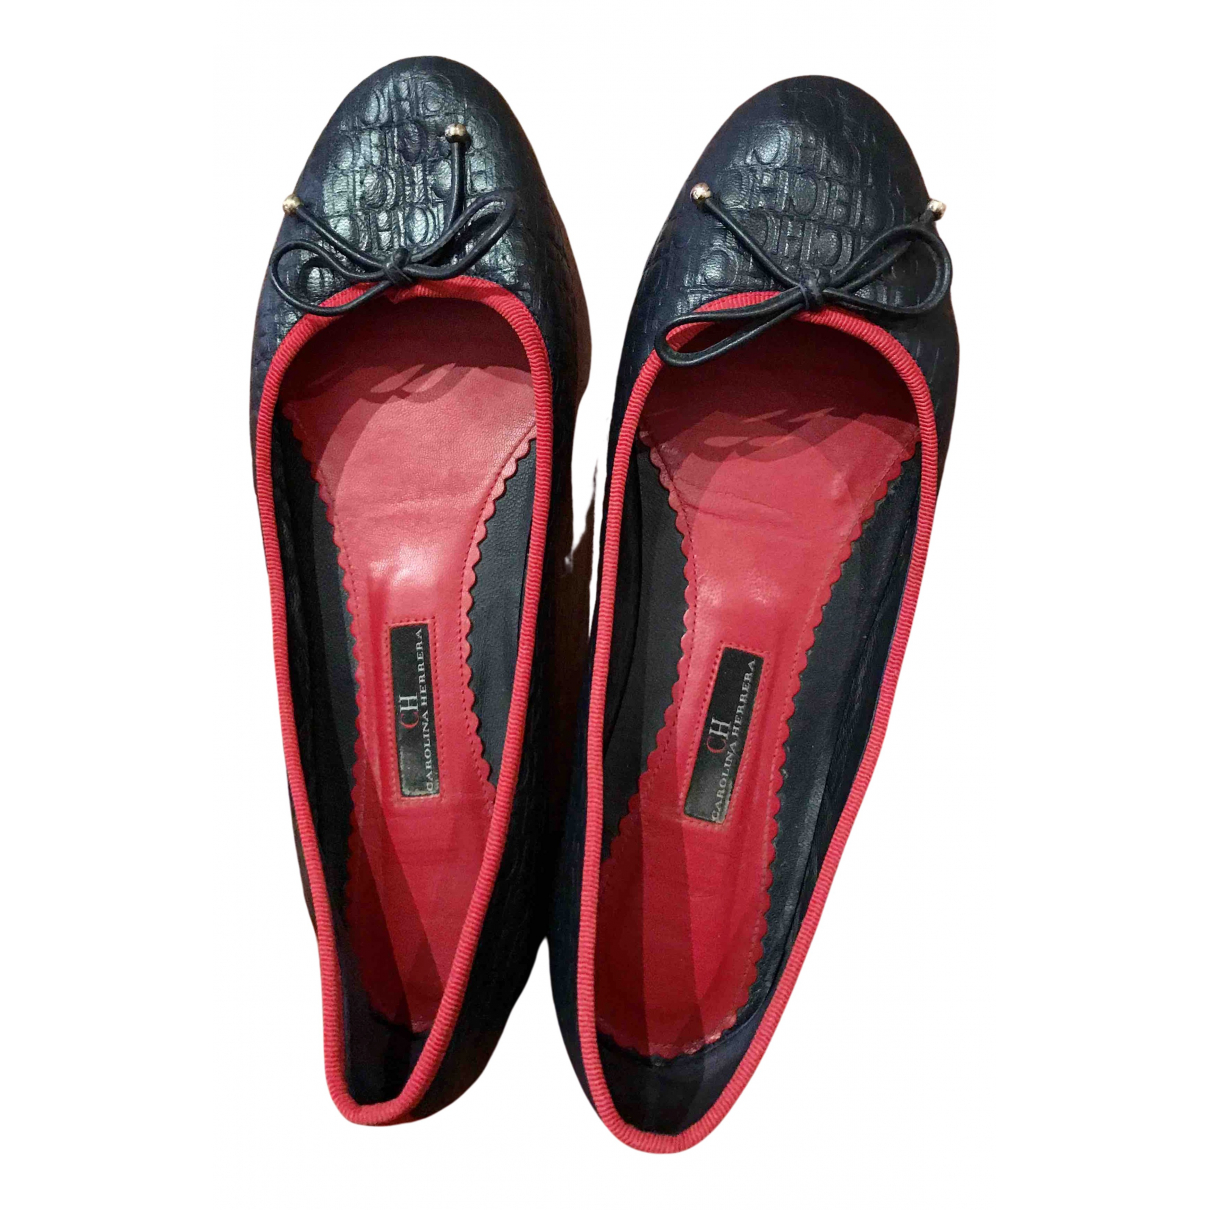 Carolina Herrera \N Ballerinas in  Blau Leder